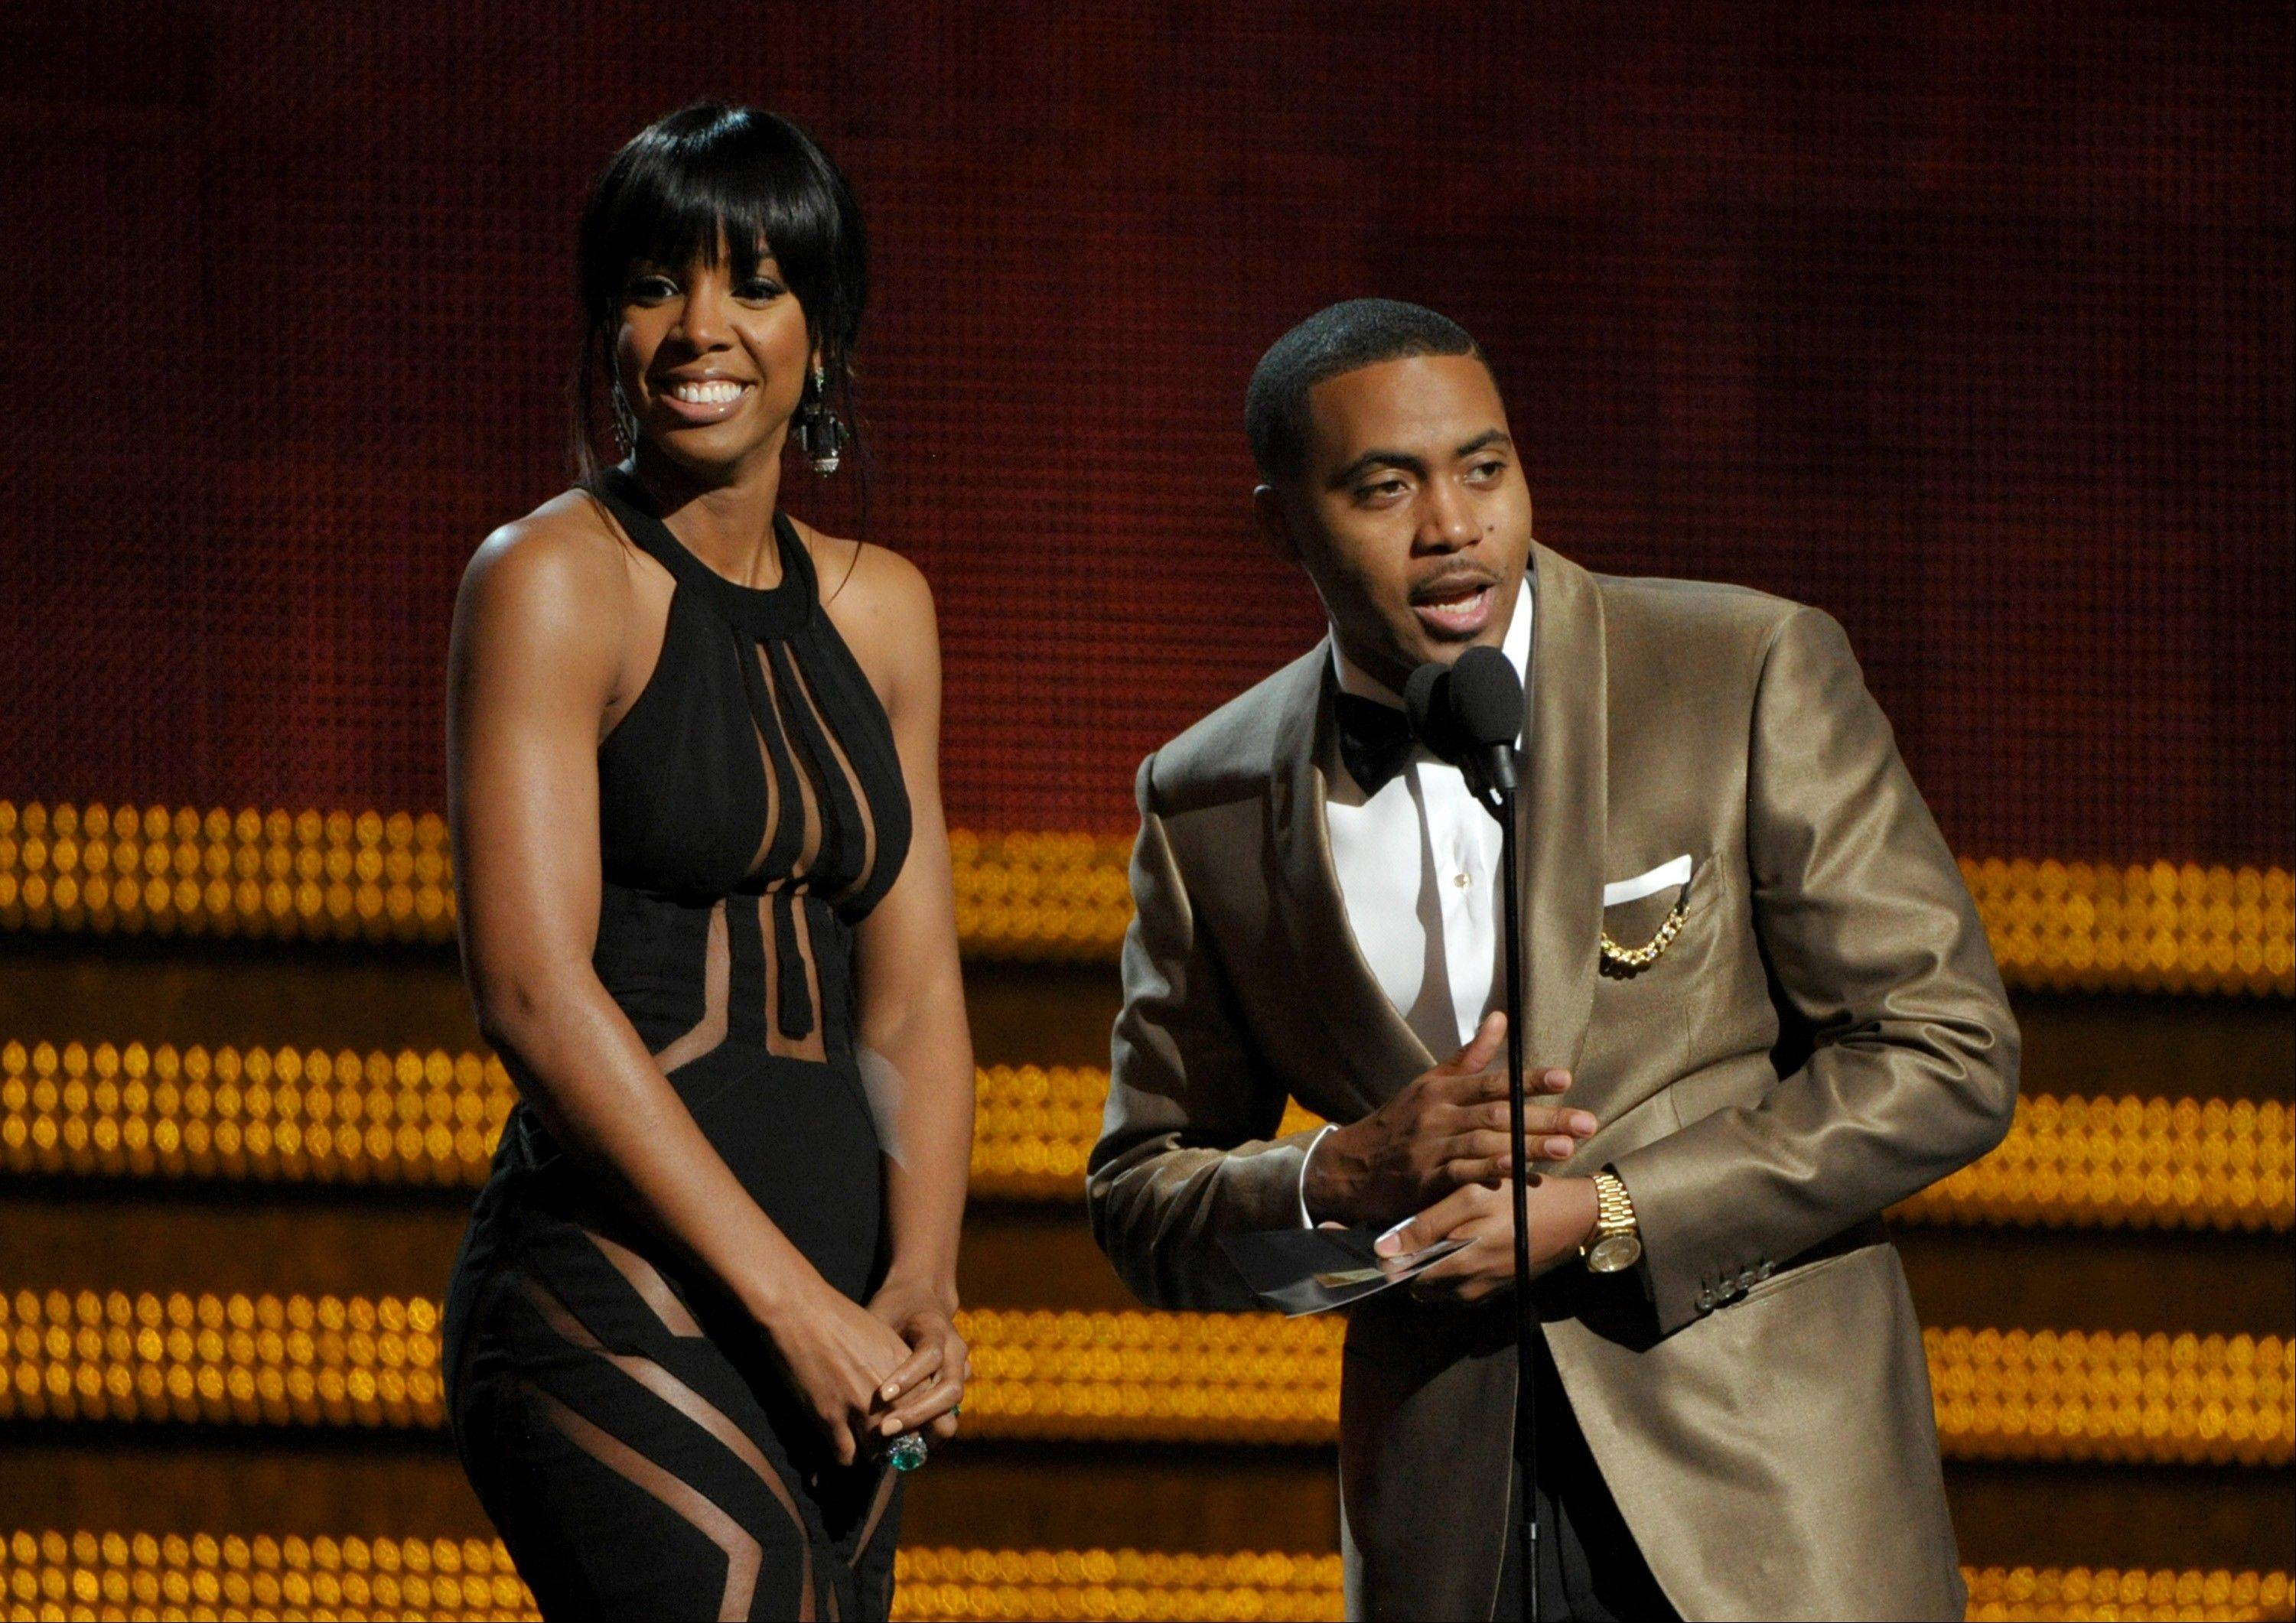 Kelly Rowland, left, and Nas present the award for best urban contemporary album at the 55th annual Grammy Awards on Sunday, Feb. 10, 2013, in Los Angeles.